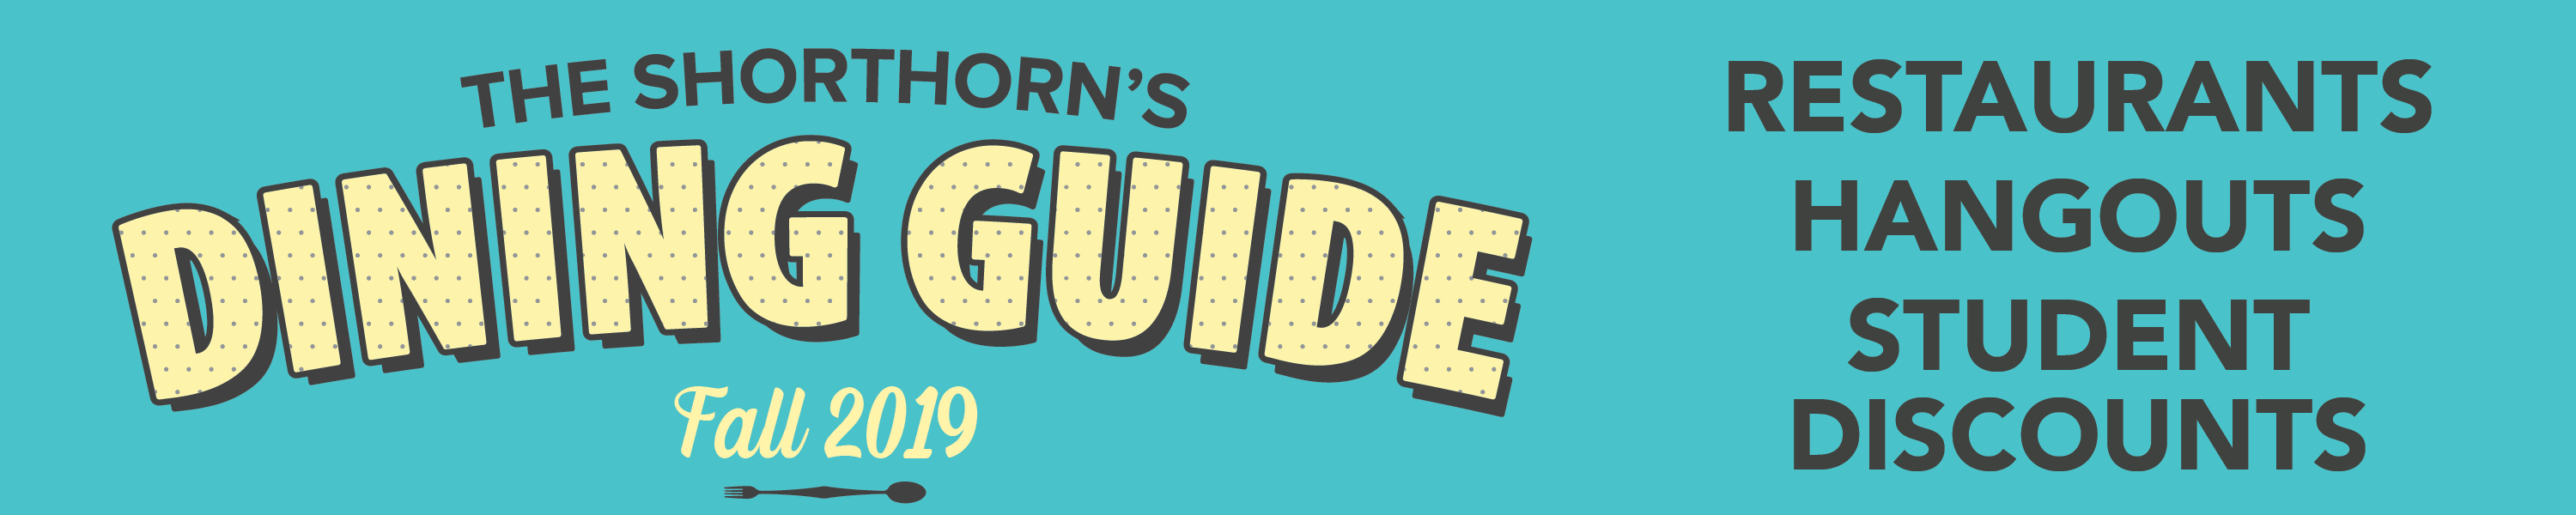 Shorthorn Dining Guide Header Image